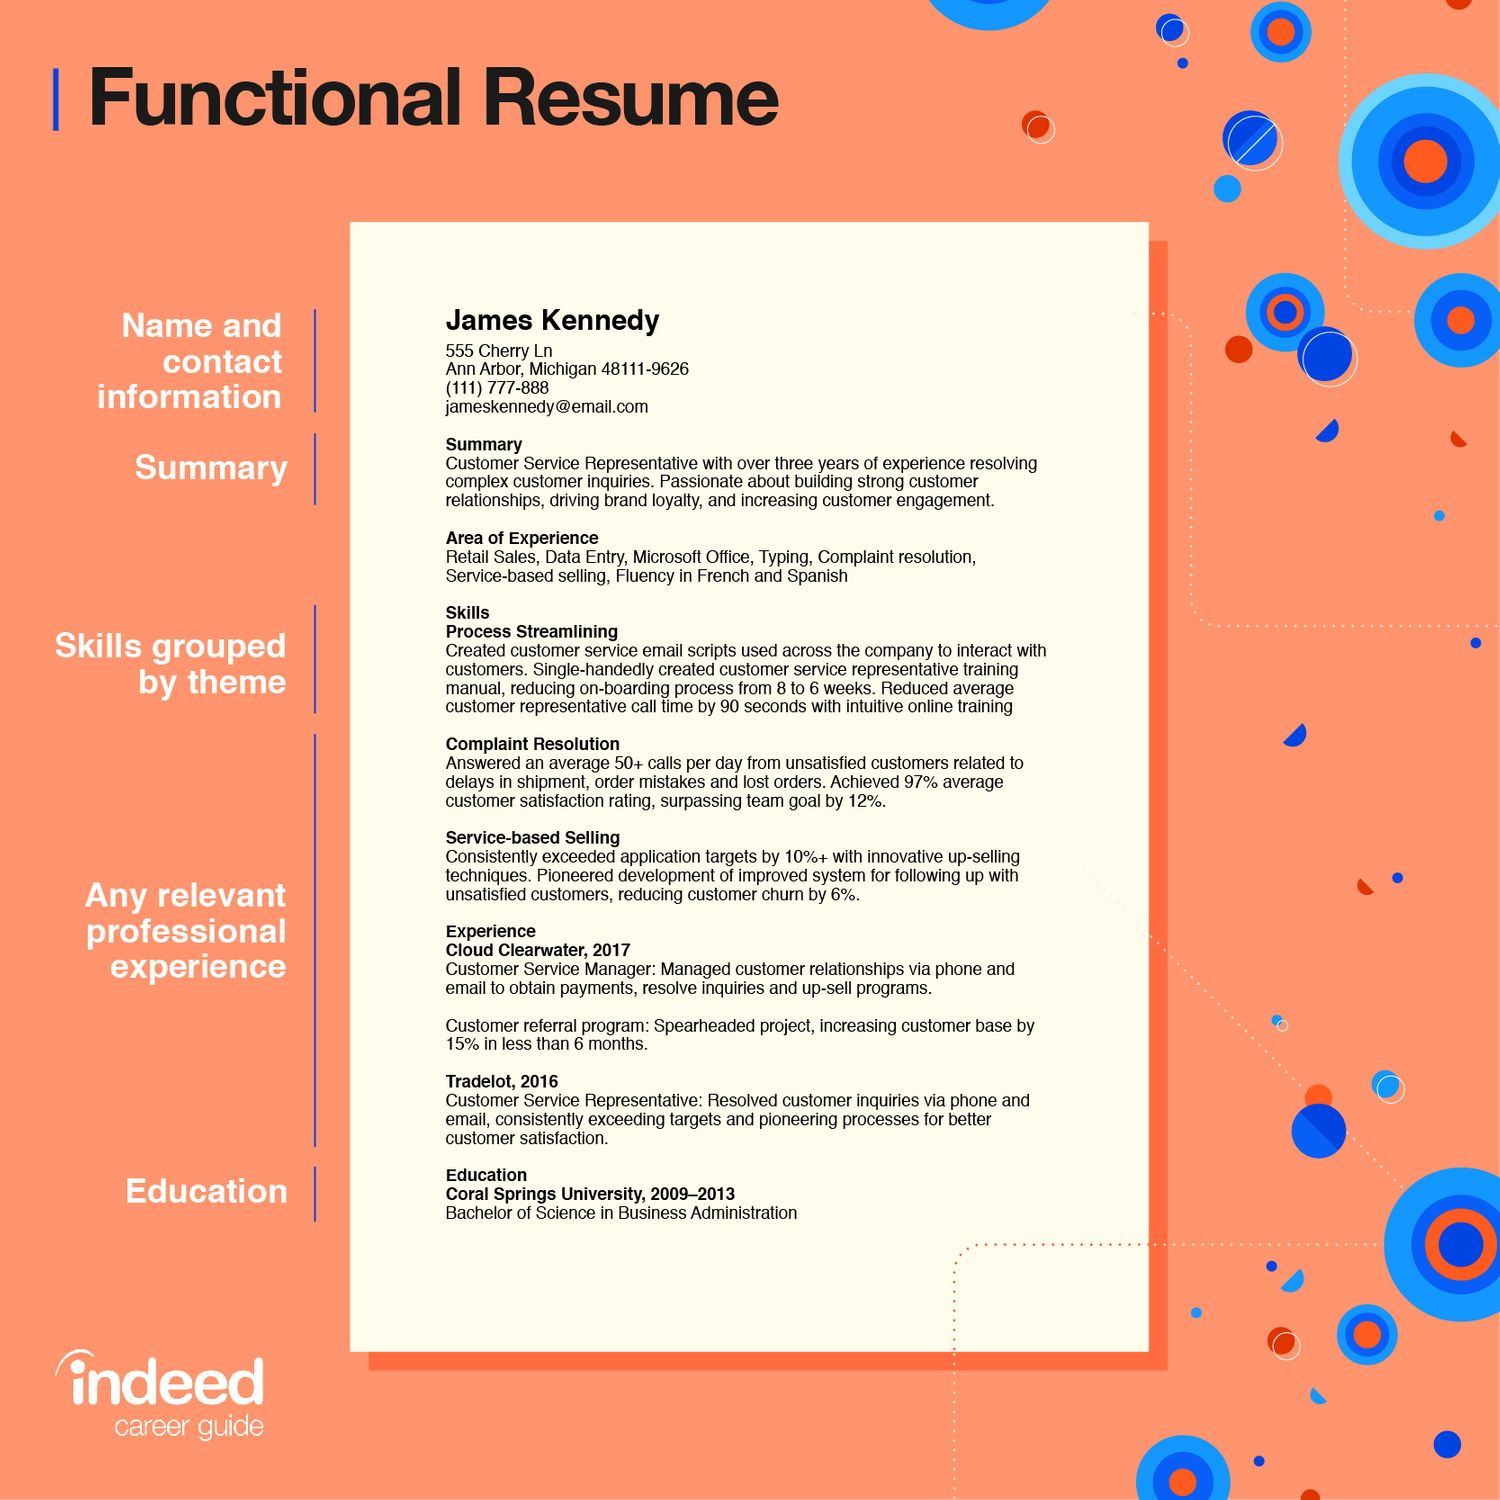 best skills to include on resume with examples indeed and strengths resized production Resume Resume Skills And Strengths Examples